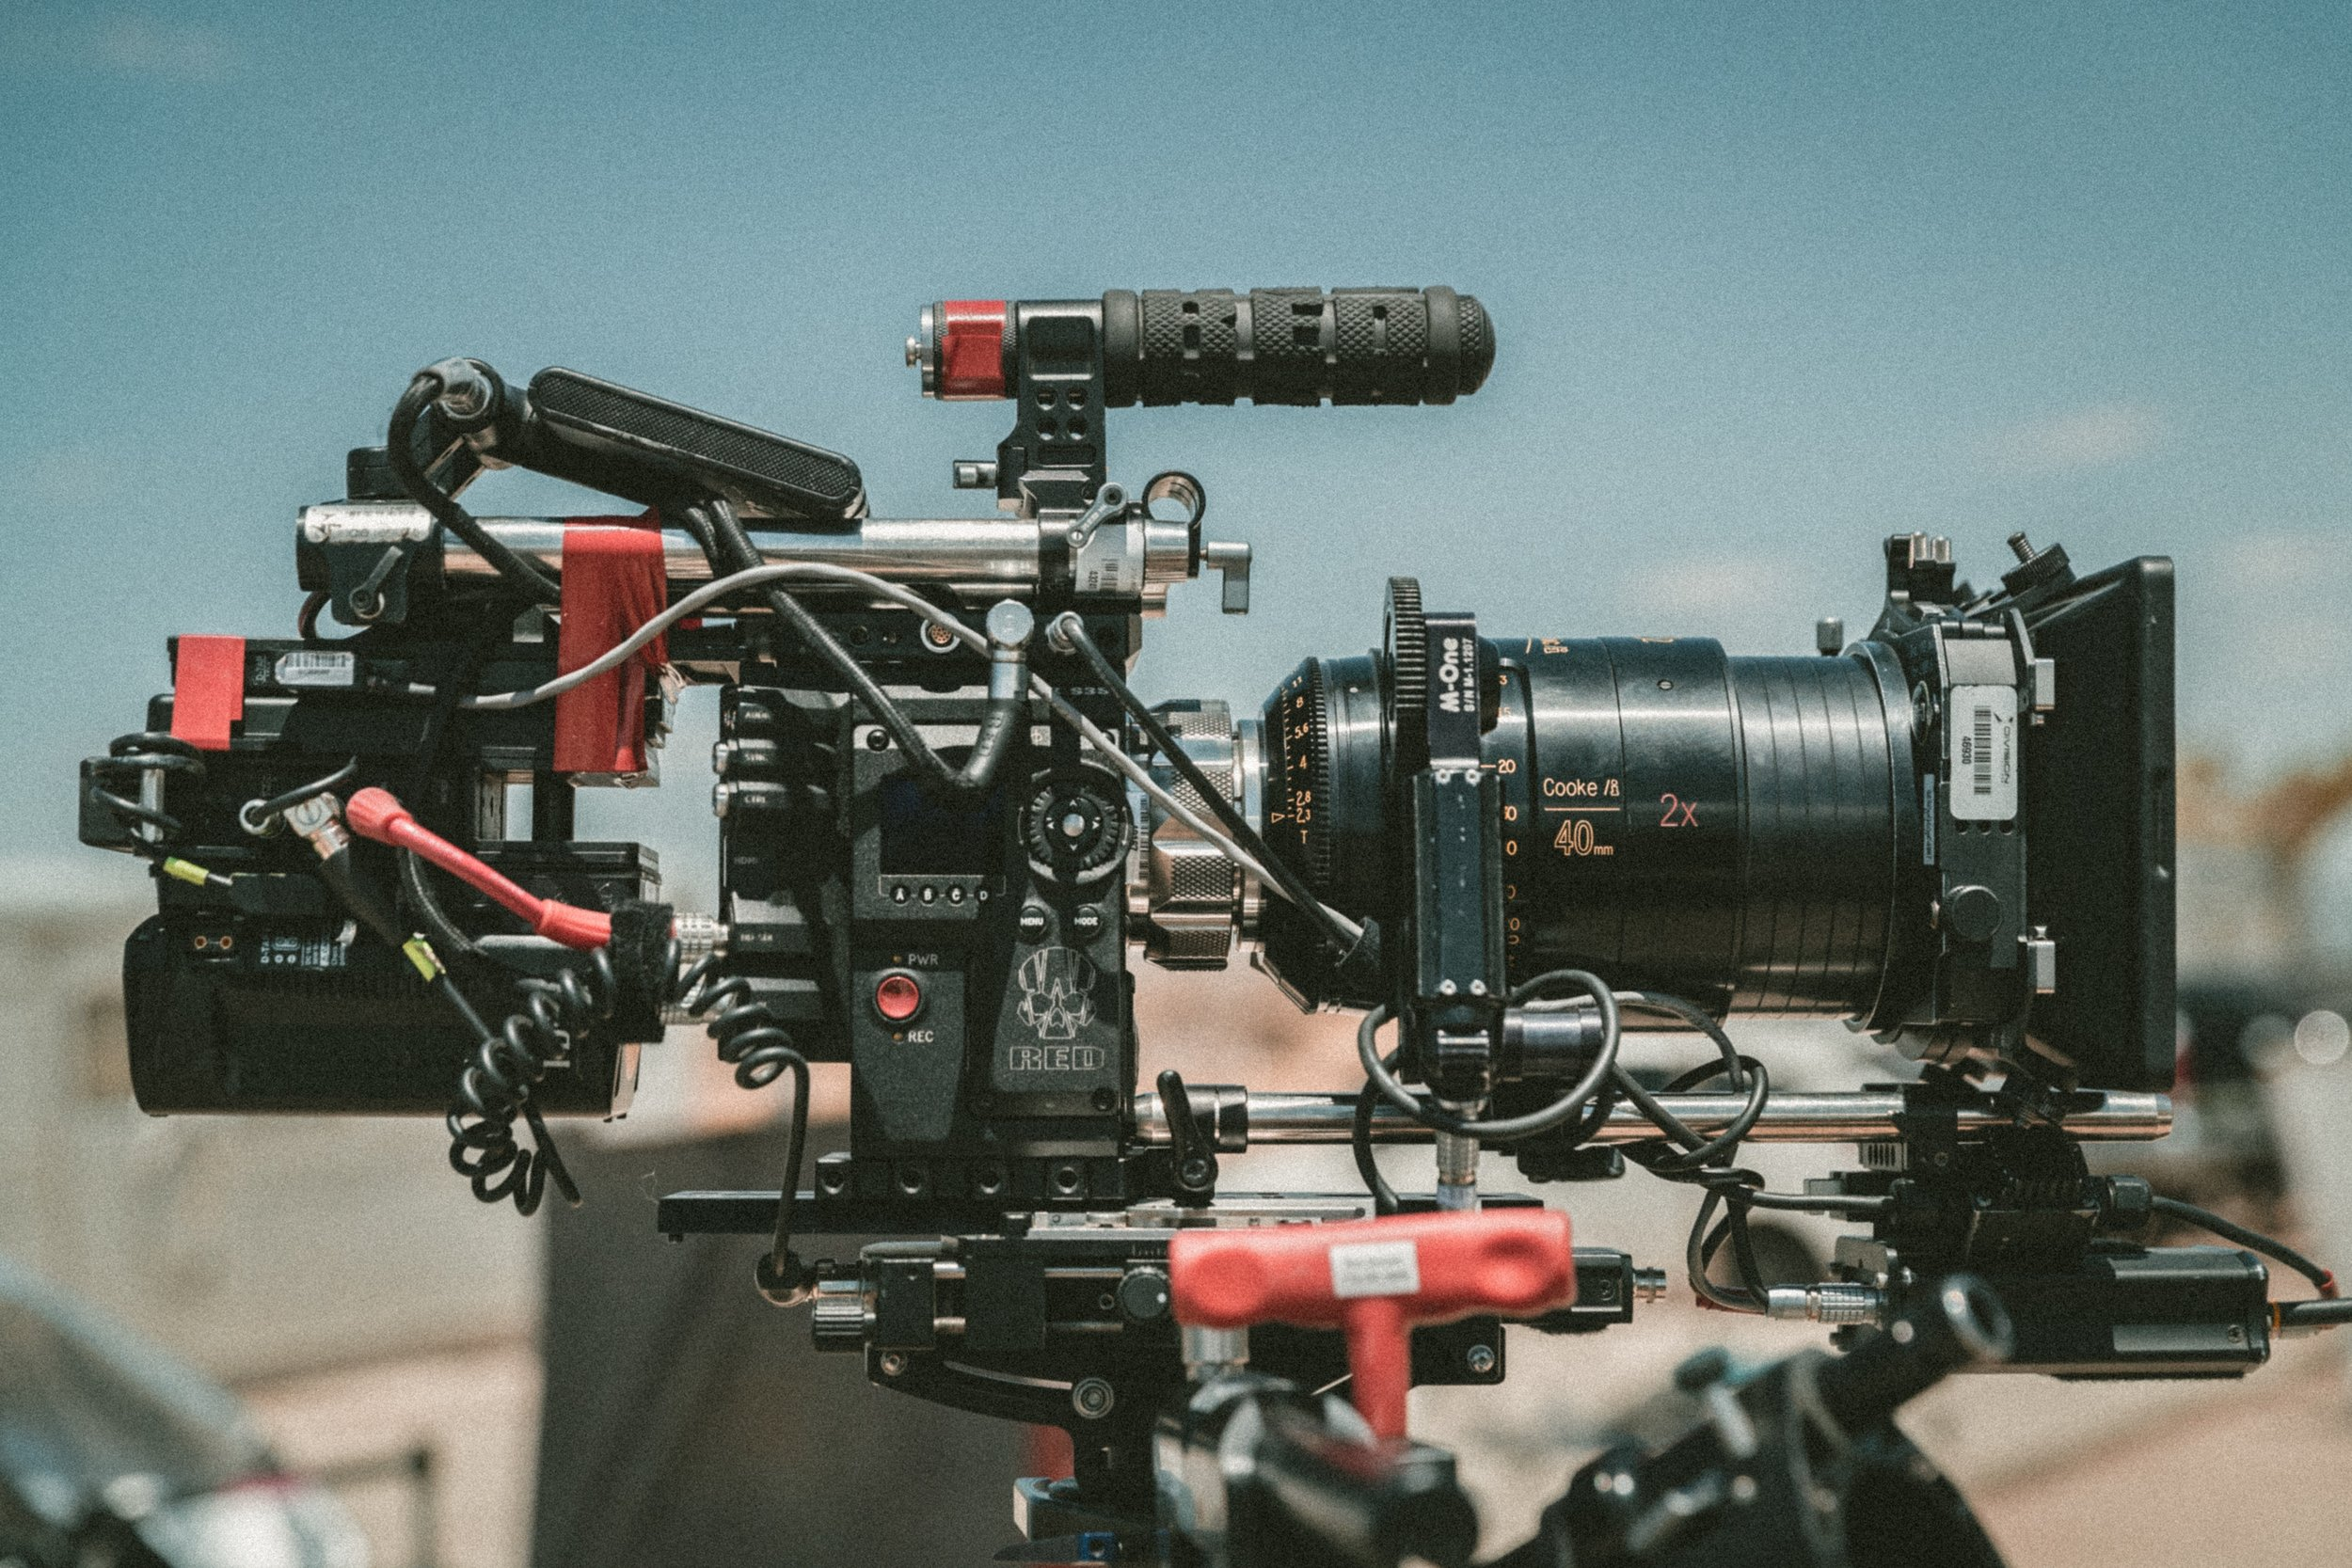 machine-motor-vehicle-filmmaking-cinematographer-camera-accessory-focus-puller-1416455-pxhere.com.jpg